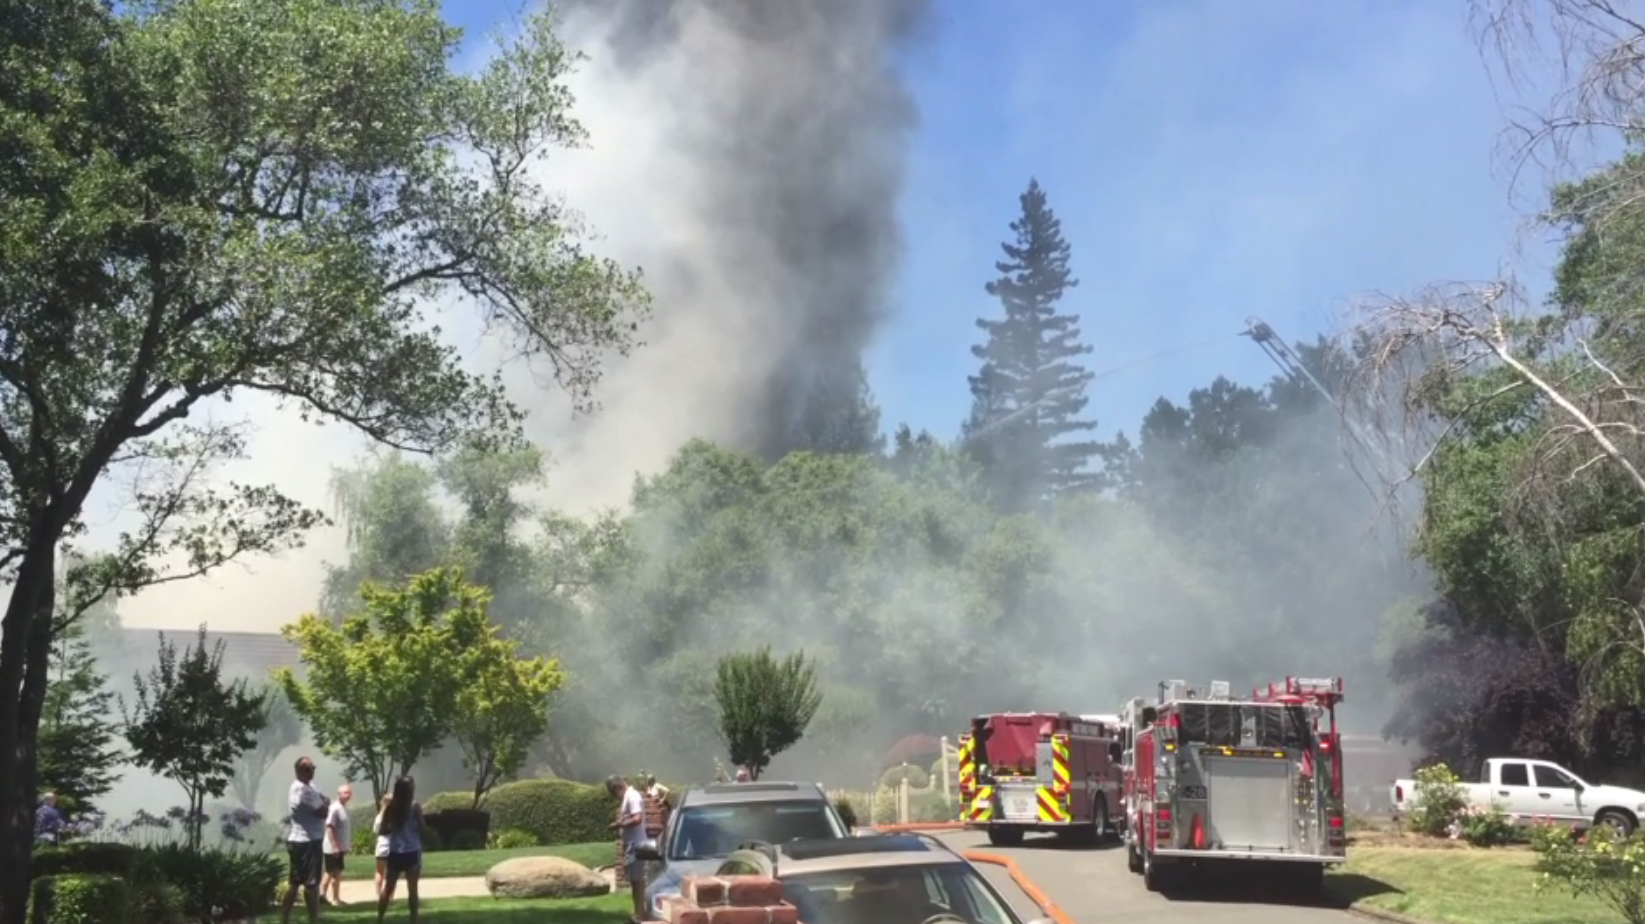 The South Placer Fire departmentDepartment battled a home fire Sunday in Granite Bay.